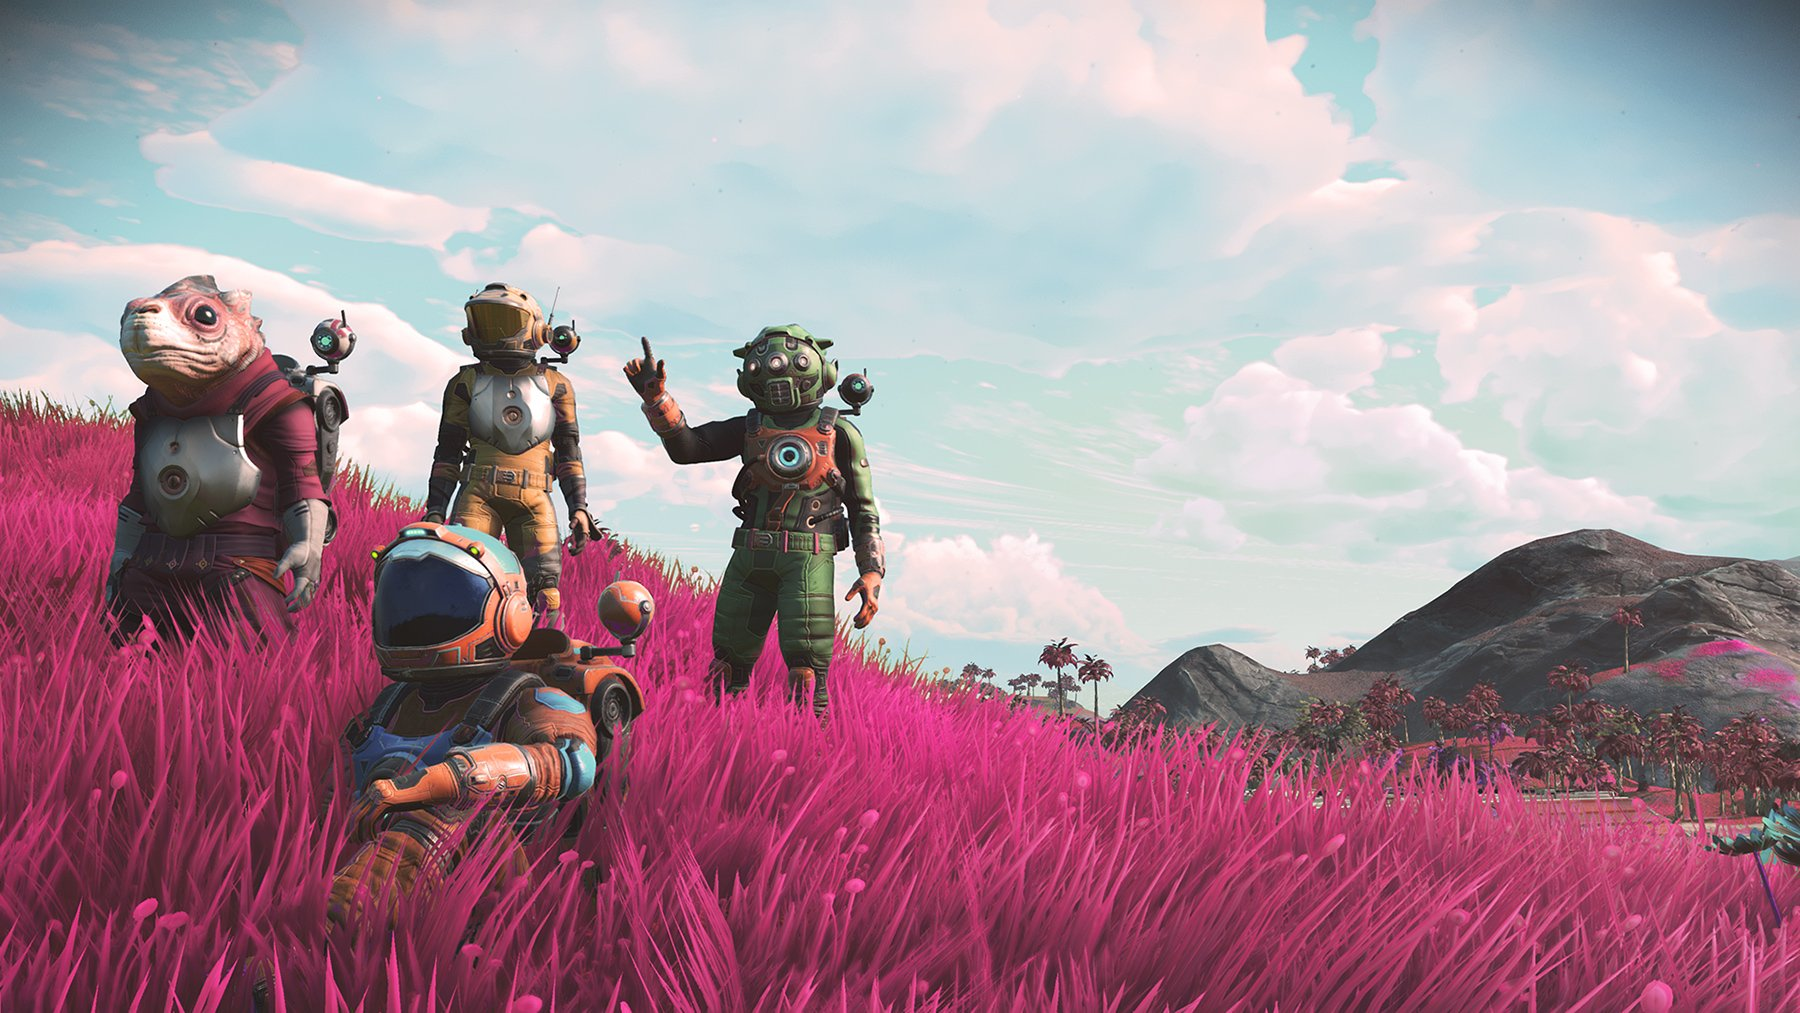 Weekly content and events lined up for No Man's Sky screenshot